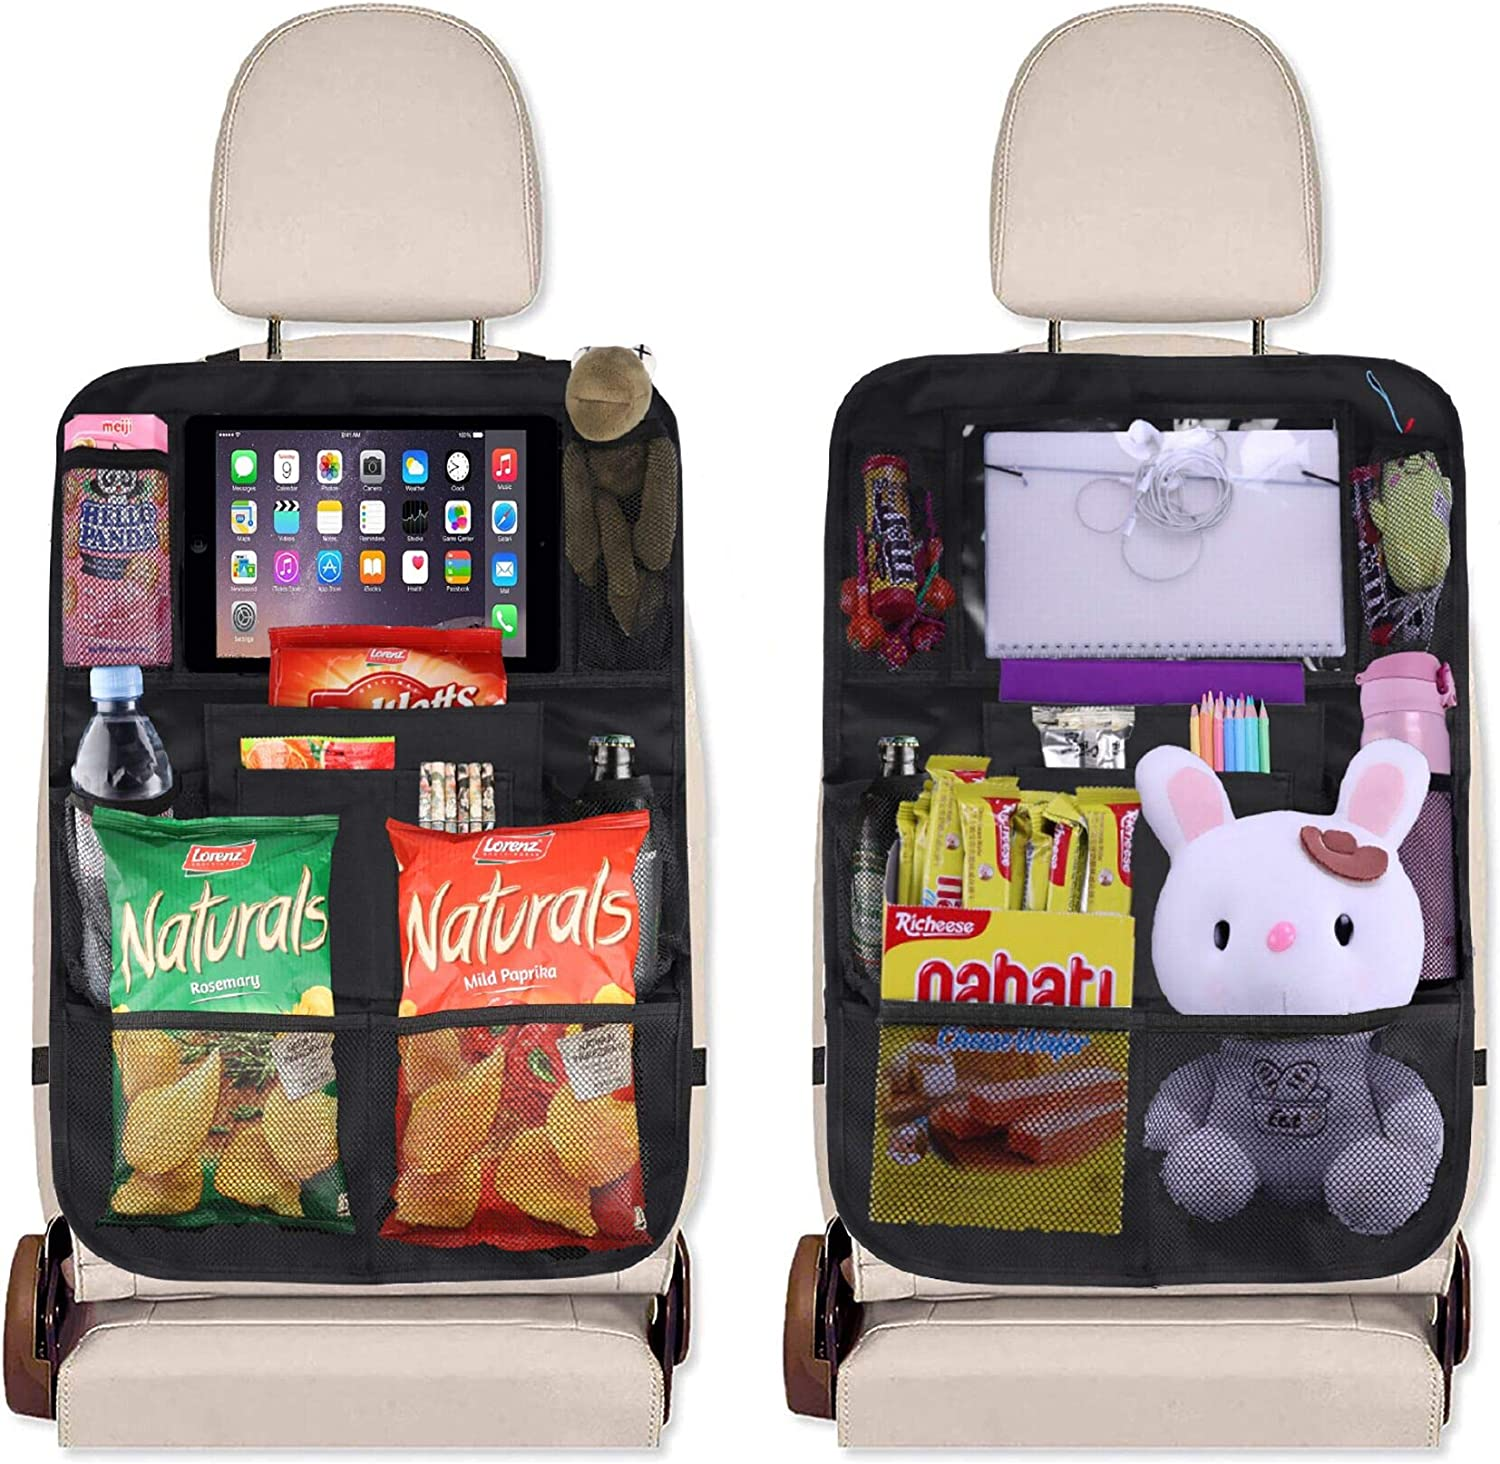 JUSTTOP Black Car Backseat Organizer with Touch Screen Tablet Holder + 9 Storage Pockets Kick Mats Car Seat Back Protectors for Kids, 2 pack